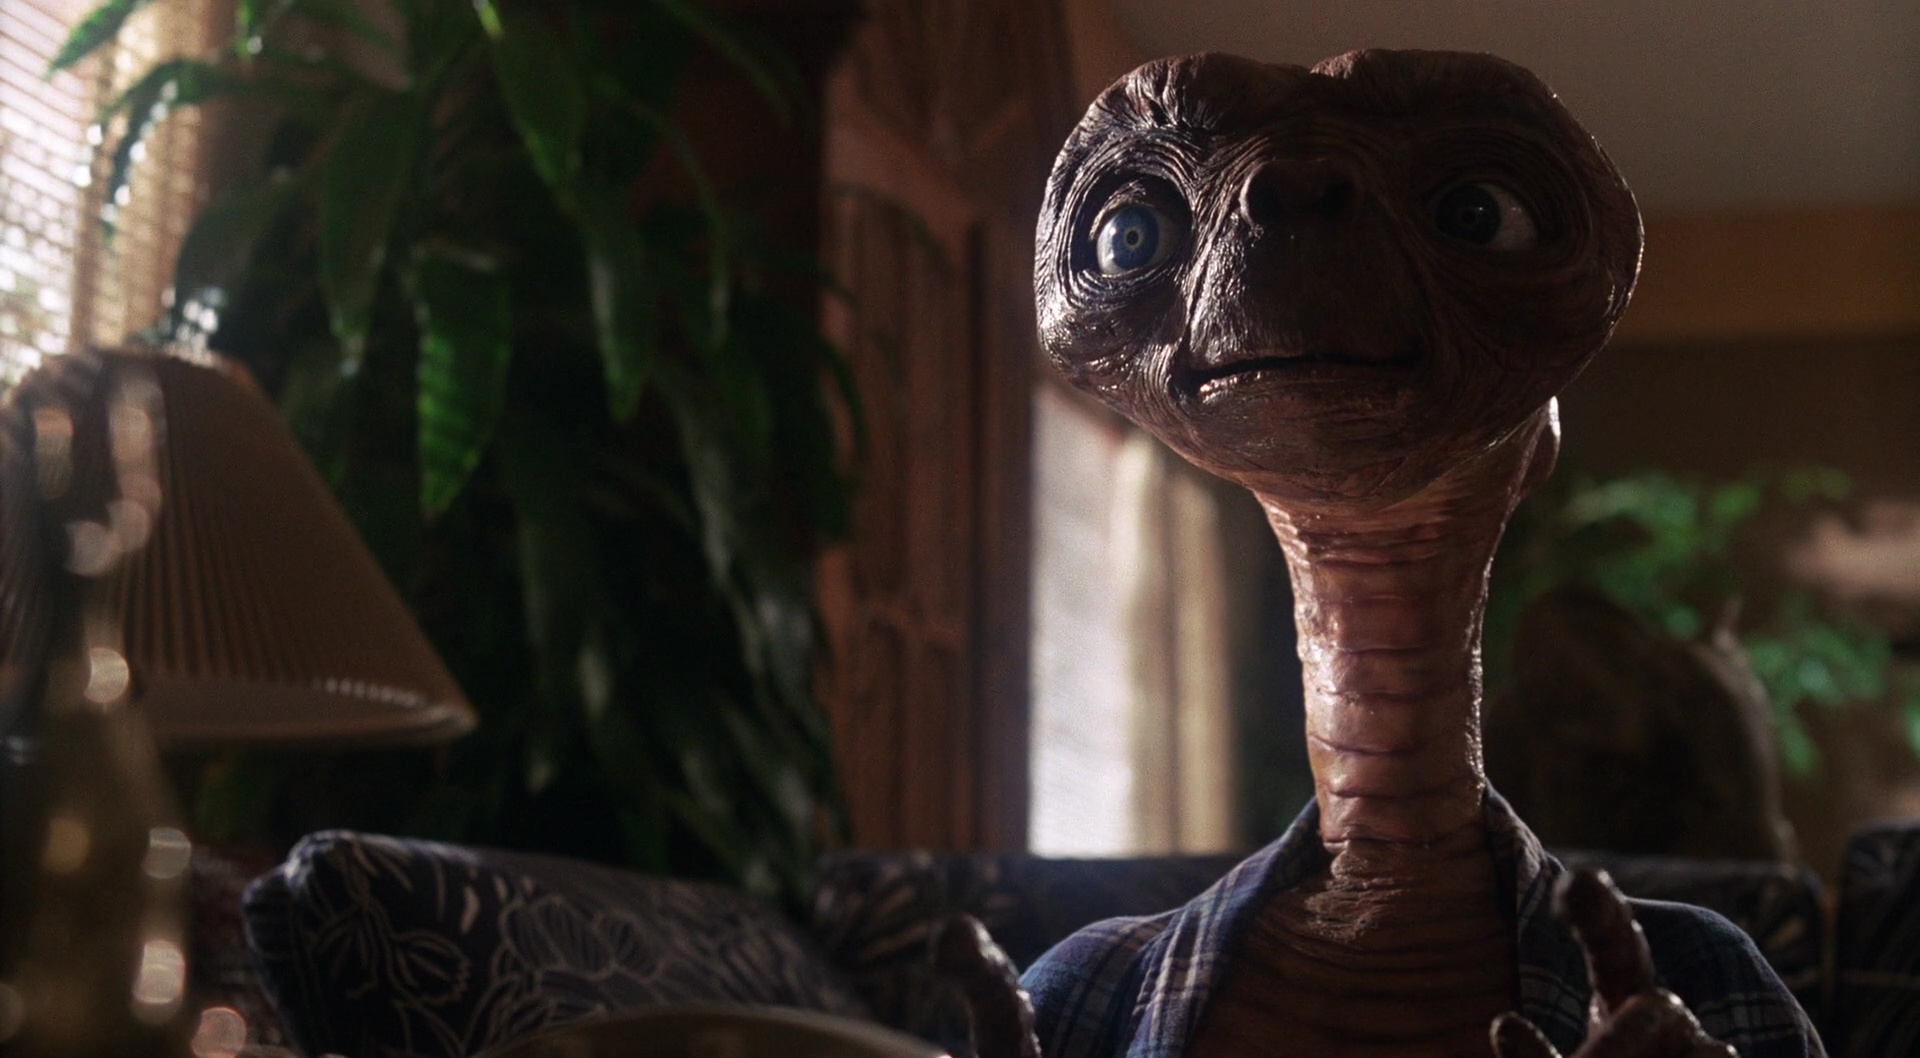 E.T. the Extra-Terrestrial film still 14